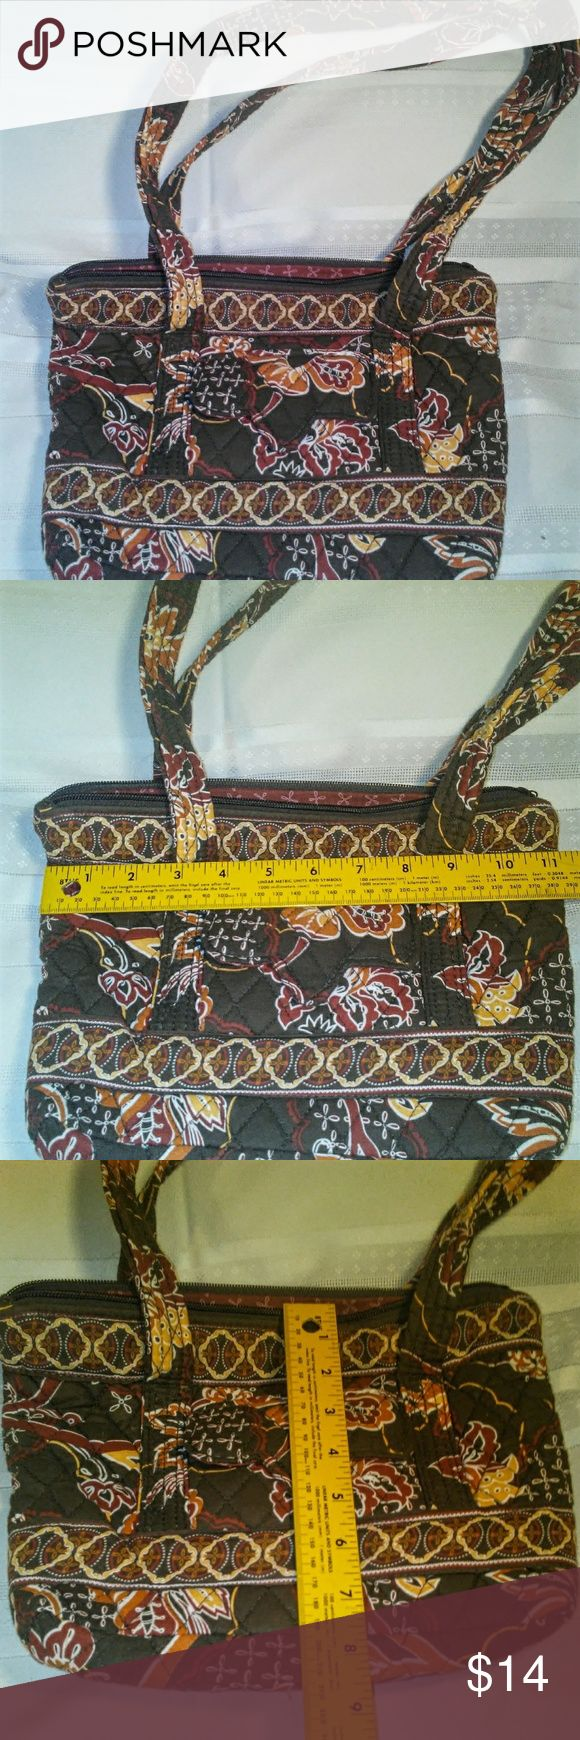 TanyaLee Floral shoulder bag Beautiful Floral pattern. Snap front pocket. Double straps. Zipper closure. Inside pocket. Very good condition. Super Fast Ship! Inv#01710A TanyaLee Bags Shoulder Bags